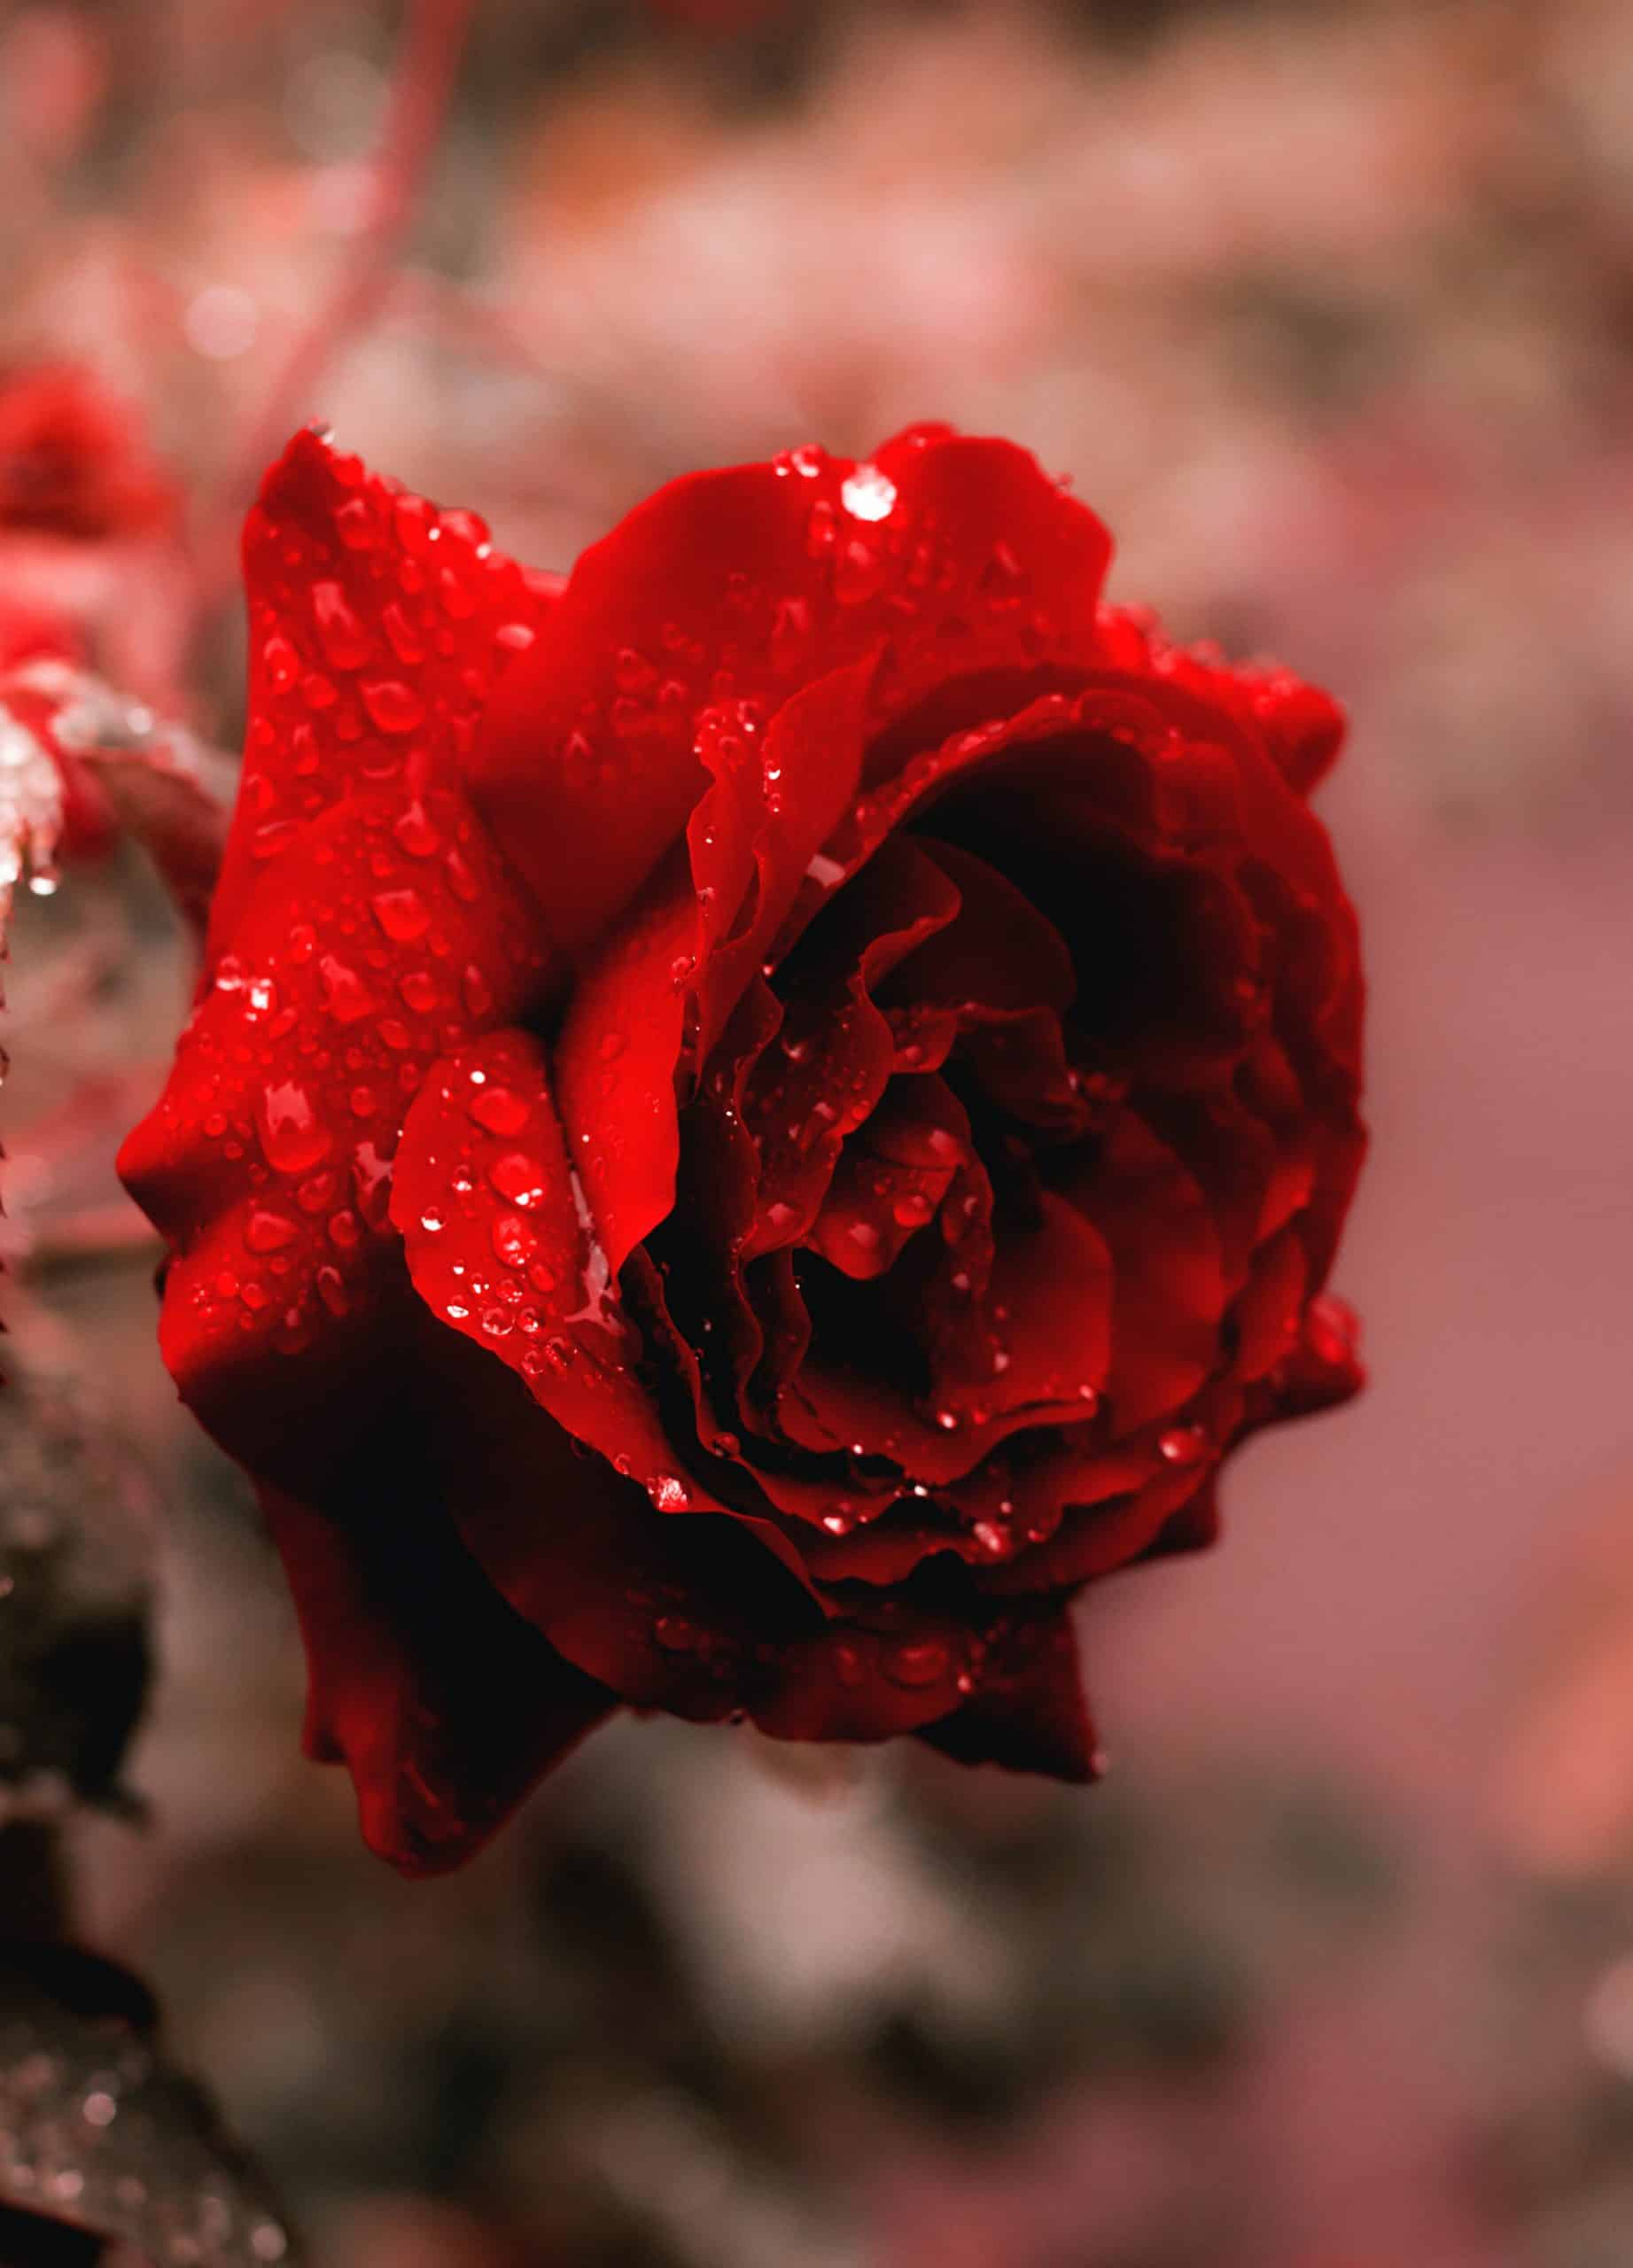 A red rose covered in dew.